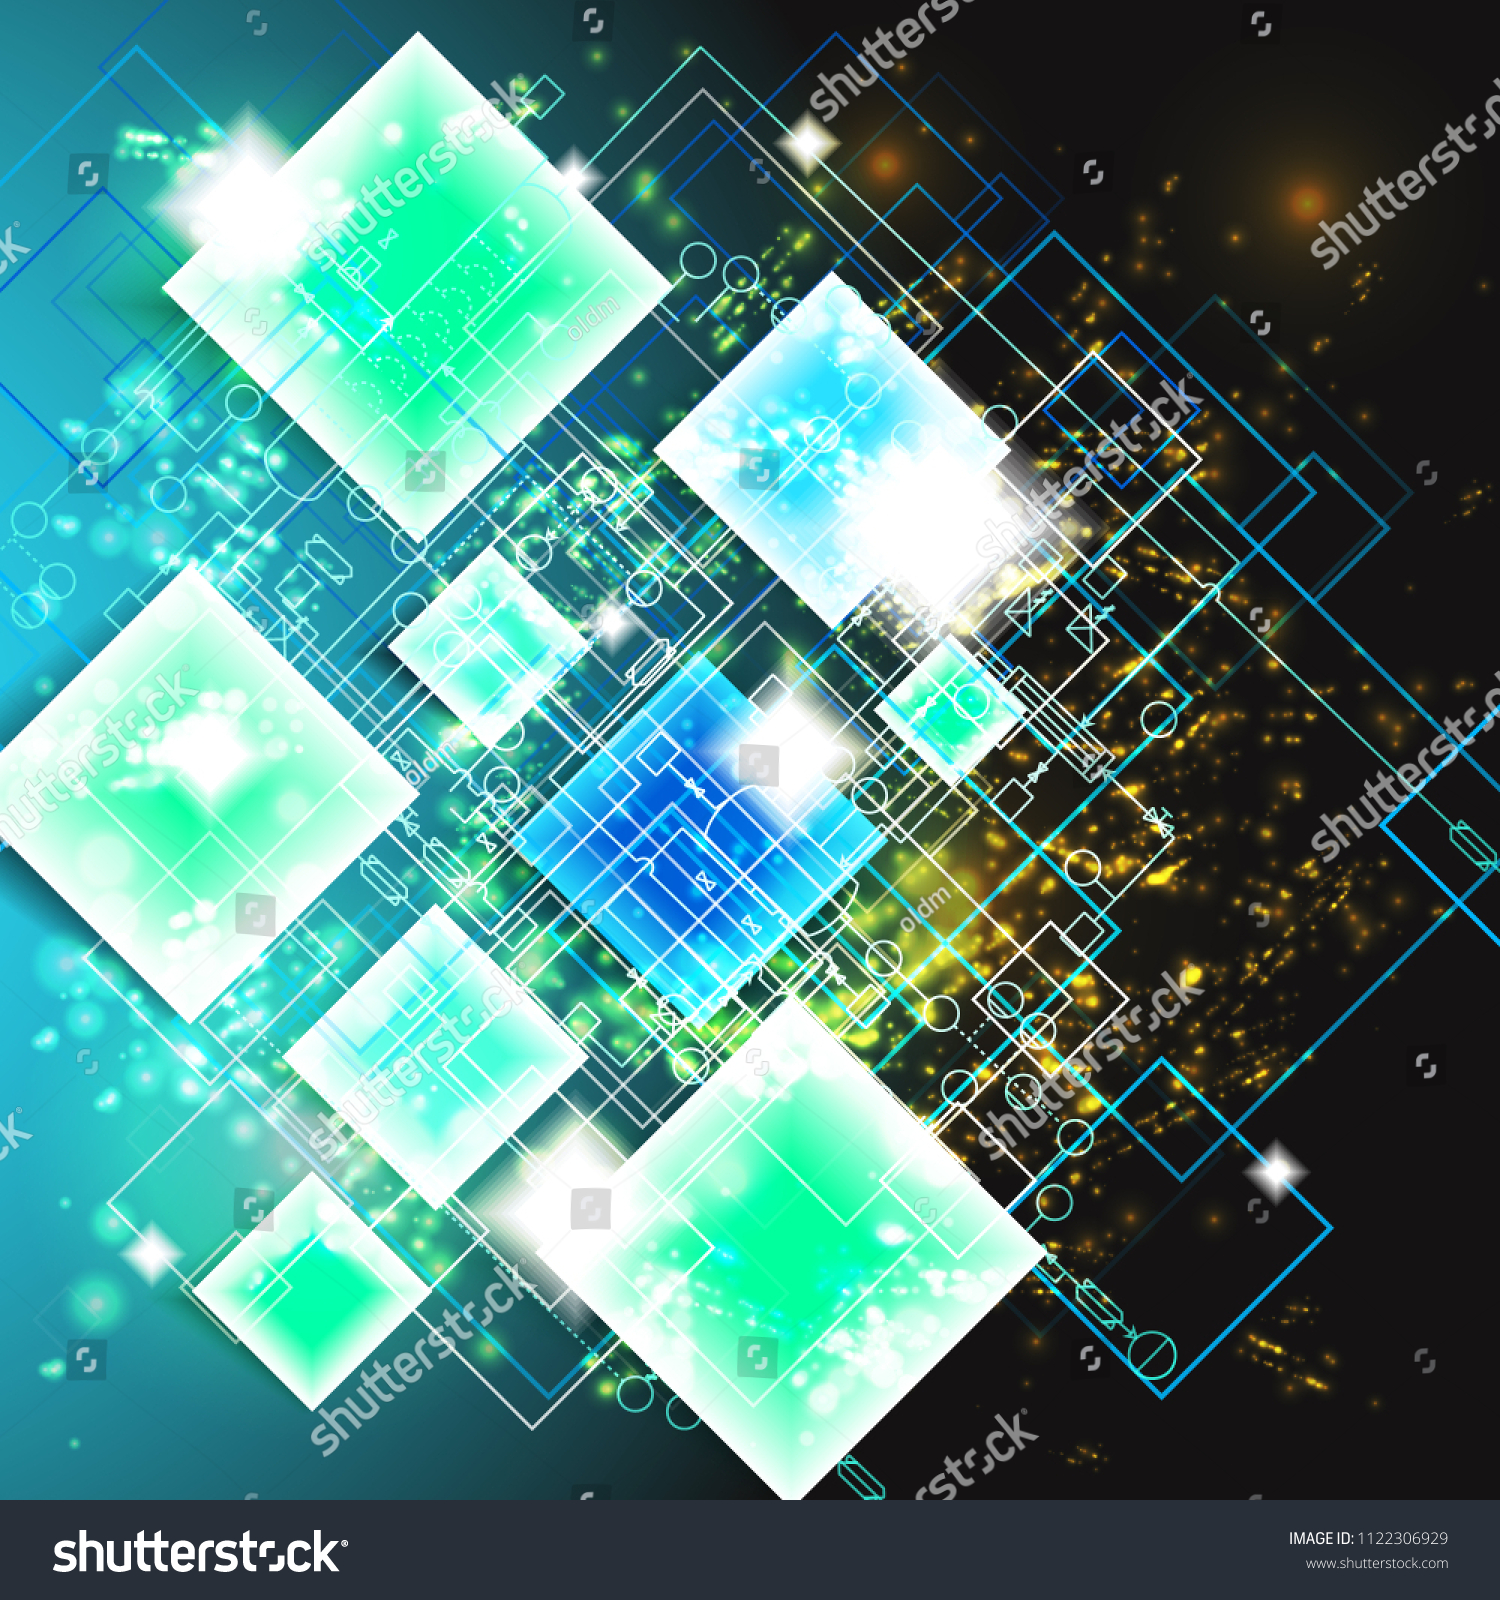 Abstract Vector Circuit Board Background Stock Design Illustration Eps 10